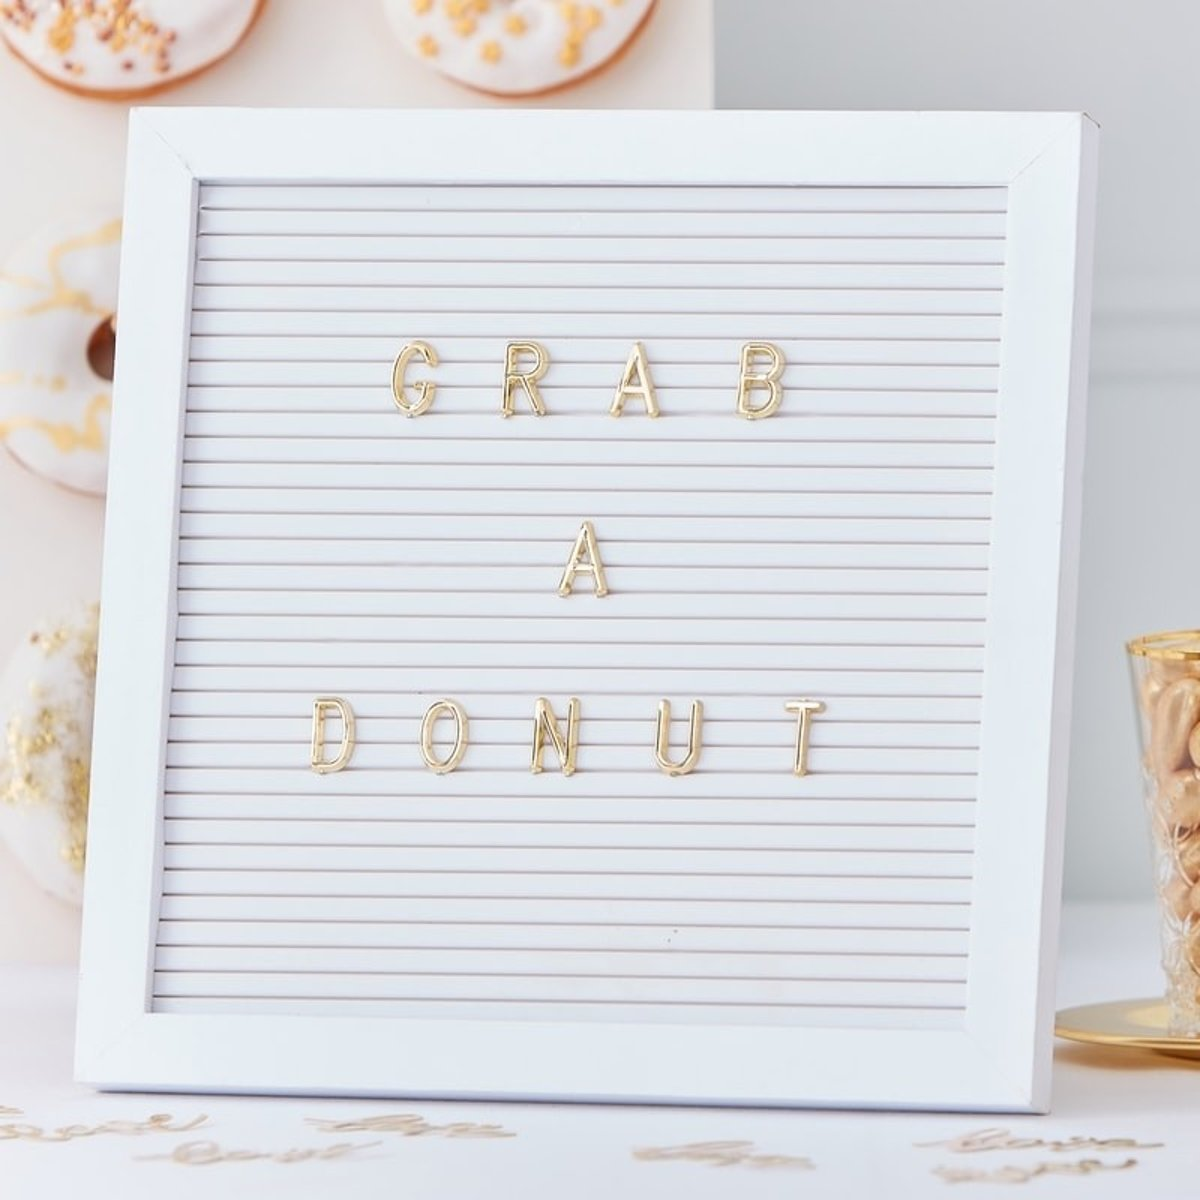 WIT LETTERBORD PEGBORD | WIT MET GOUDEN LETTERS | GOLD WEDDING | GINGER RAY kopen